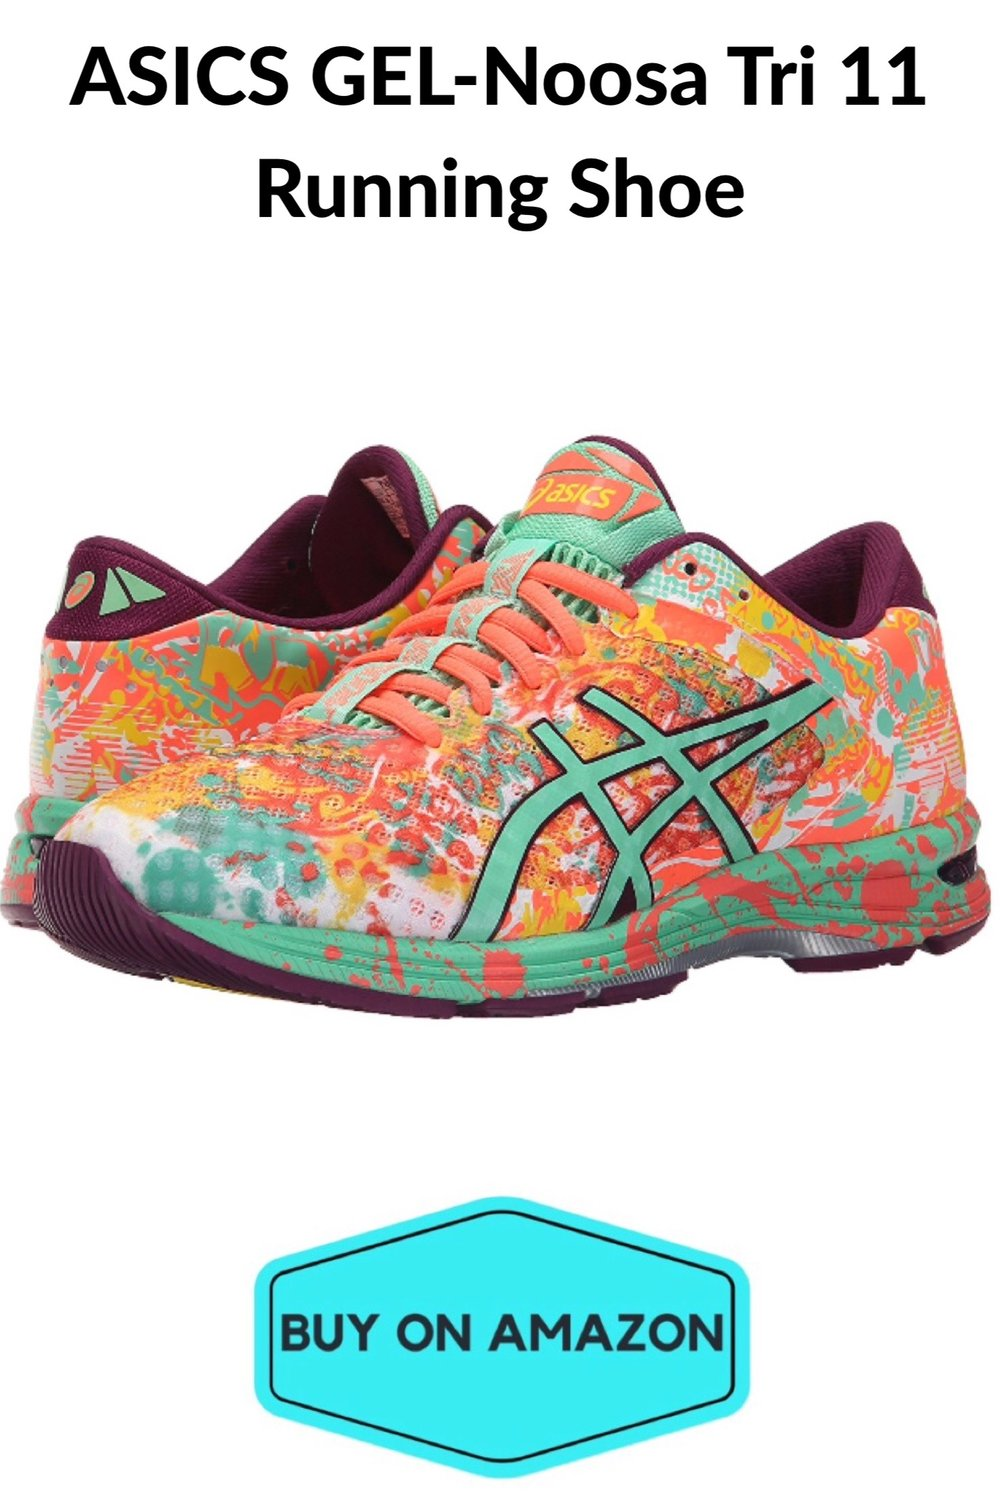 ASICS GEL-Noosa Tri 11 Women's Running Shoe